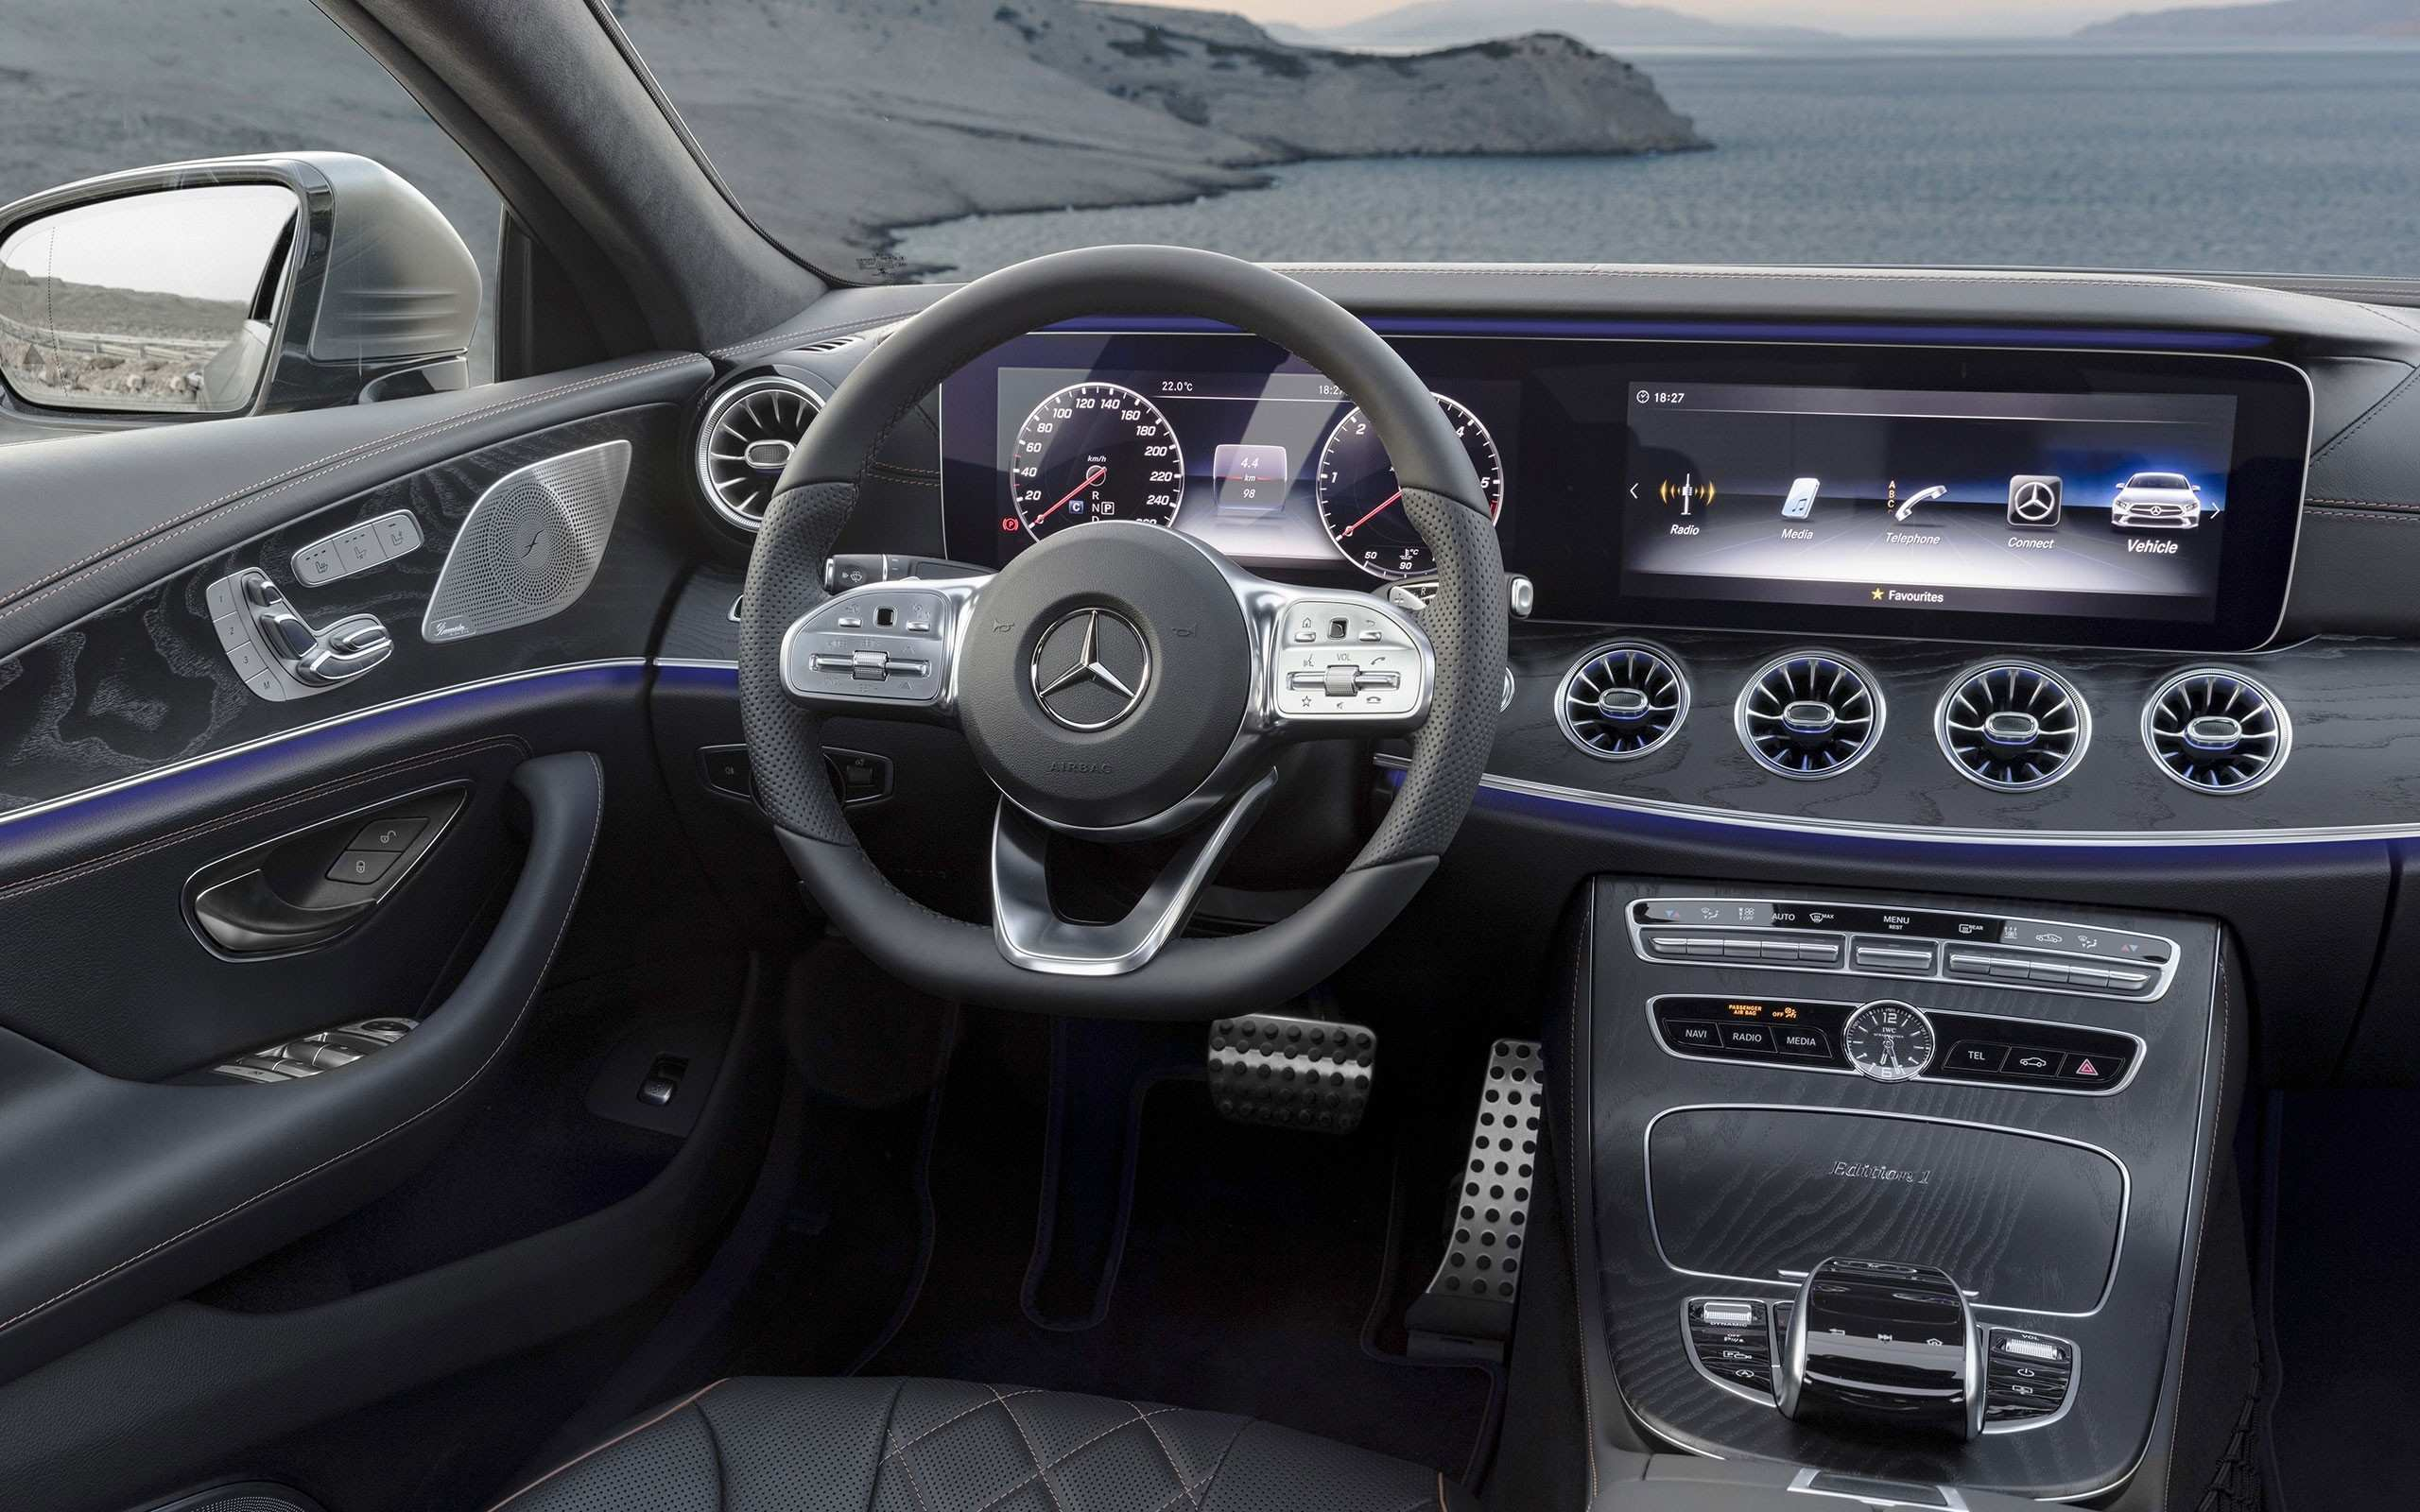 61 All New The Mercedes C 2019 Interior First Drive Price Performance And Review Performance and New Engine with The Mercedes C 2019 Interior First Drive Price Performance And Review